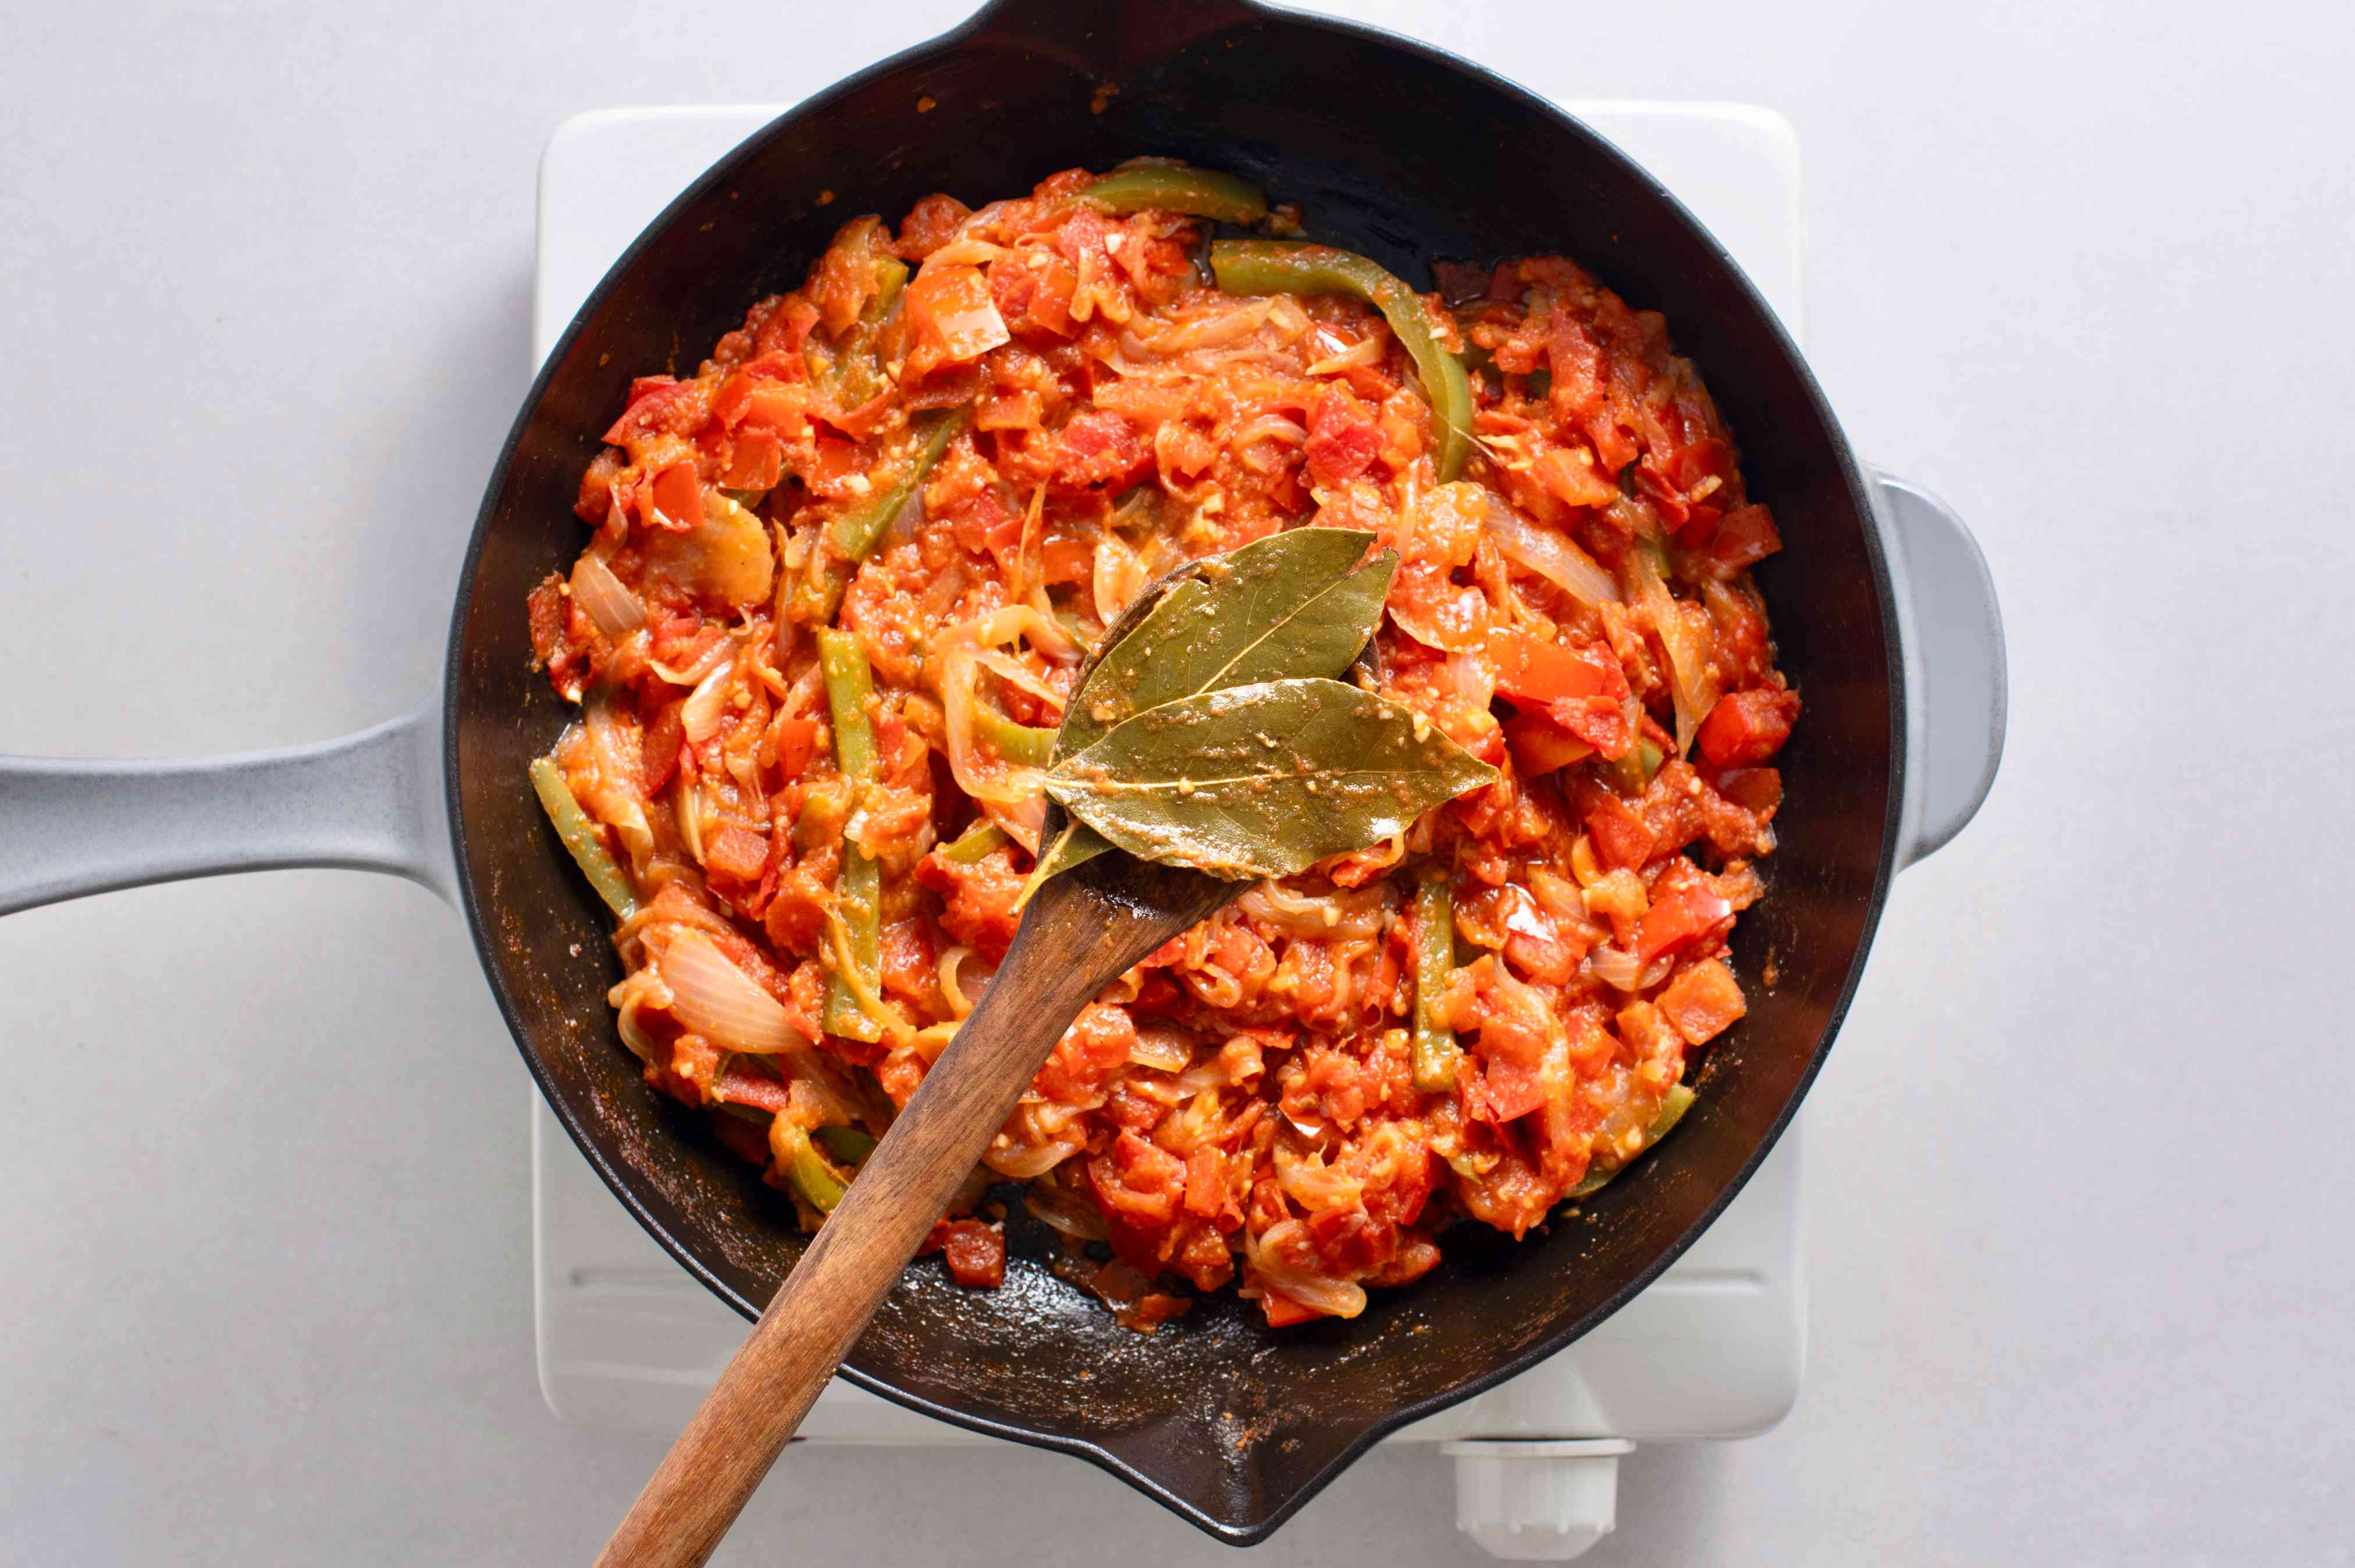 remove the bay leaves from the vegetable mixture in the skillet